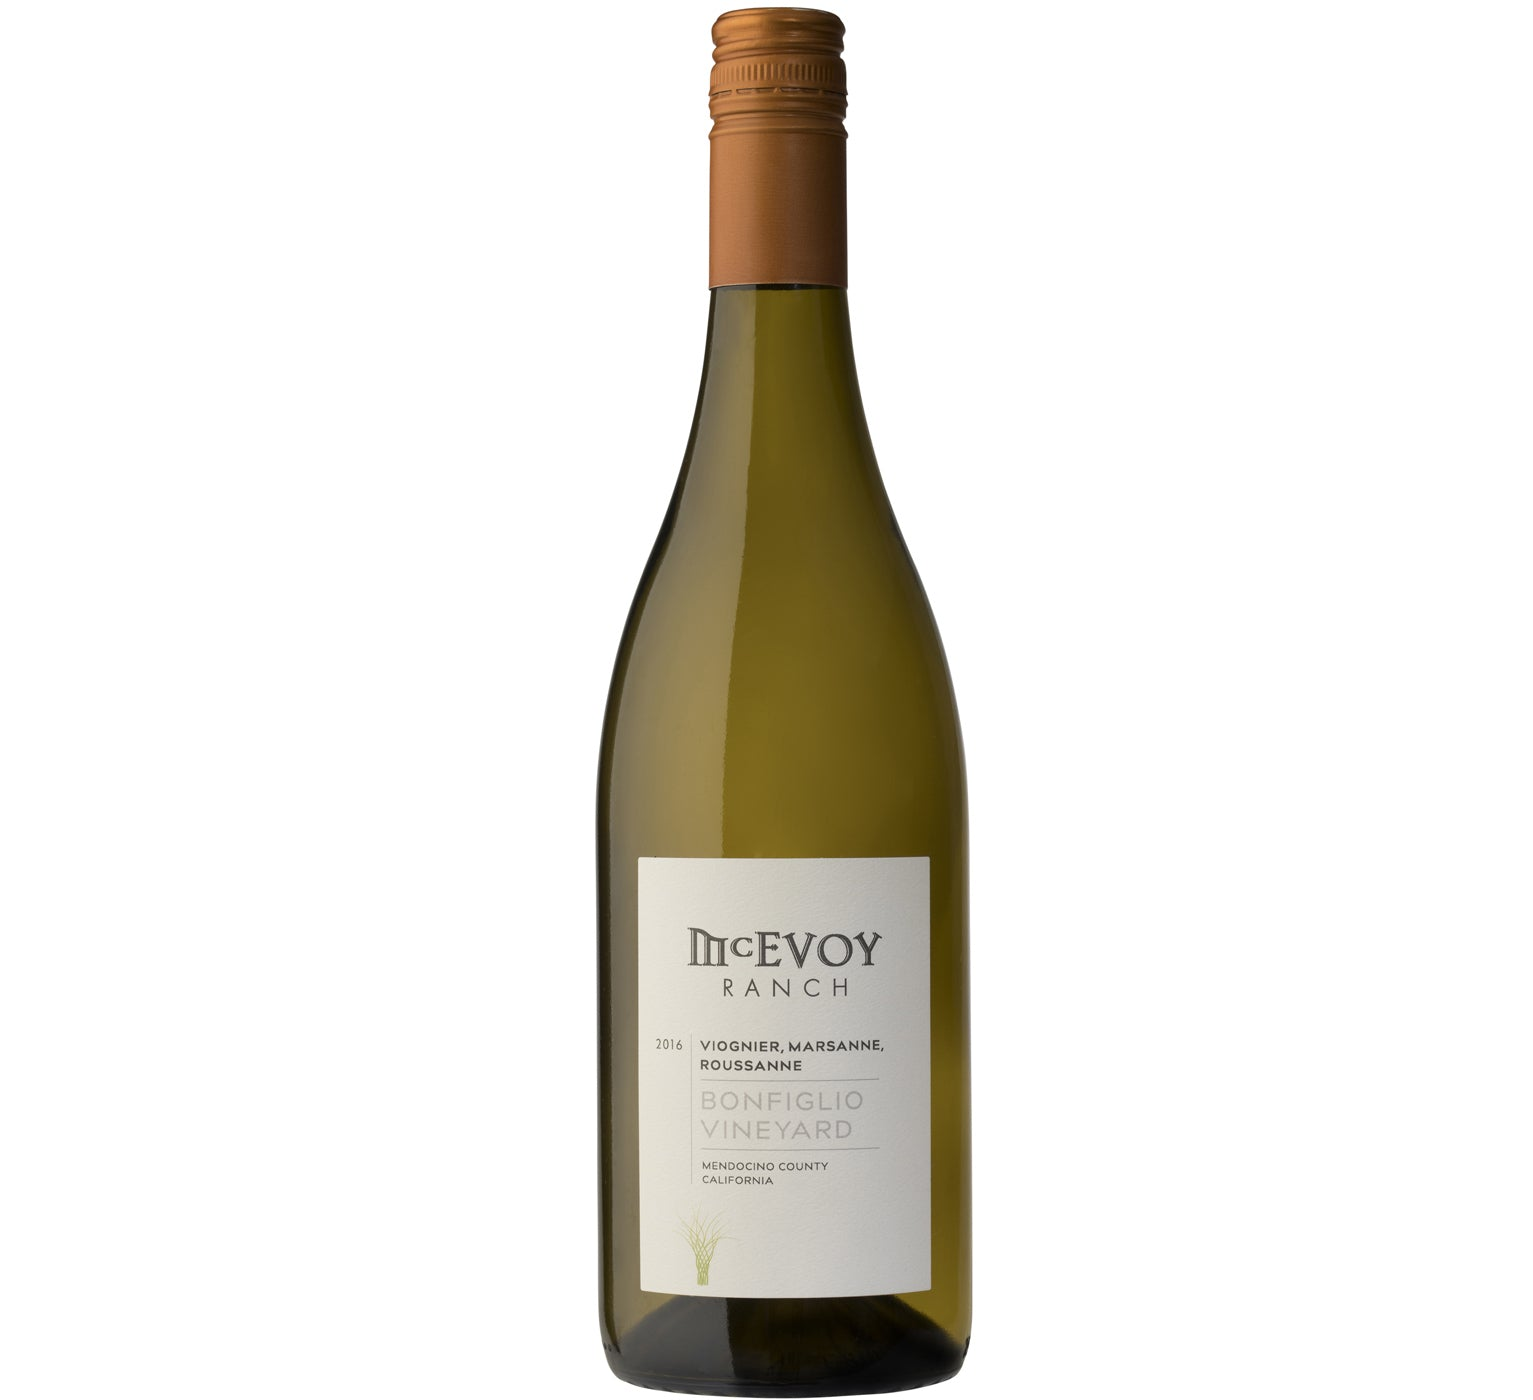 2016 Bonfiglio Wine from McEvoy Ranch - White Wine from Sonoma County, CA